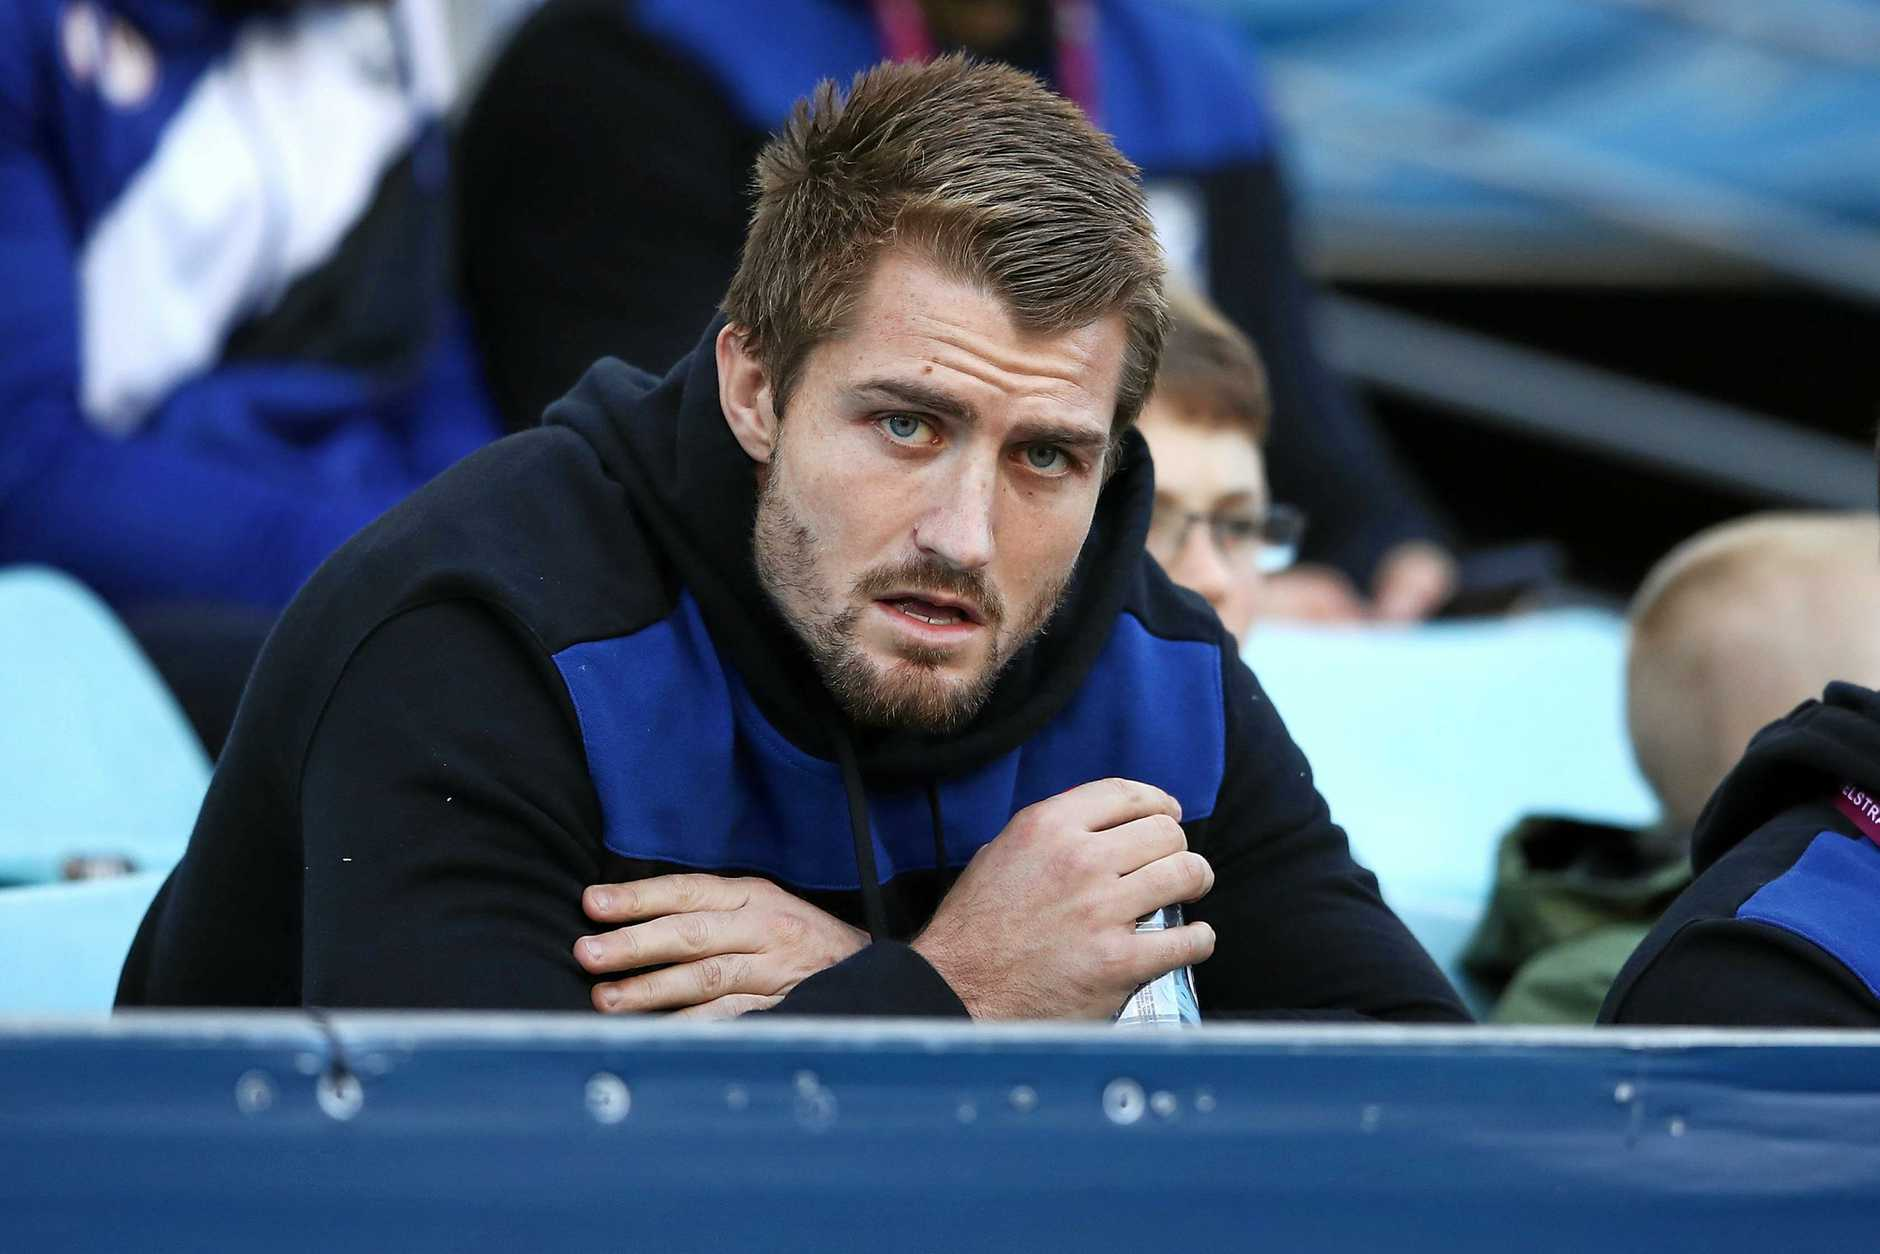 SYDNEY, AUSTRALIA - JUNE 11: Injured Bulldogs player Kieran Foran watches on from the grandstand during the round 14 NRL match between the Canterbury Bulldogs and the St George Illawarra Dragons at ANZ Stadium on June 11, 2018 in Sydney, Australia. (Photo by Mark Kolbe/Getty Images)